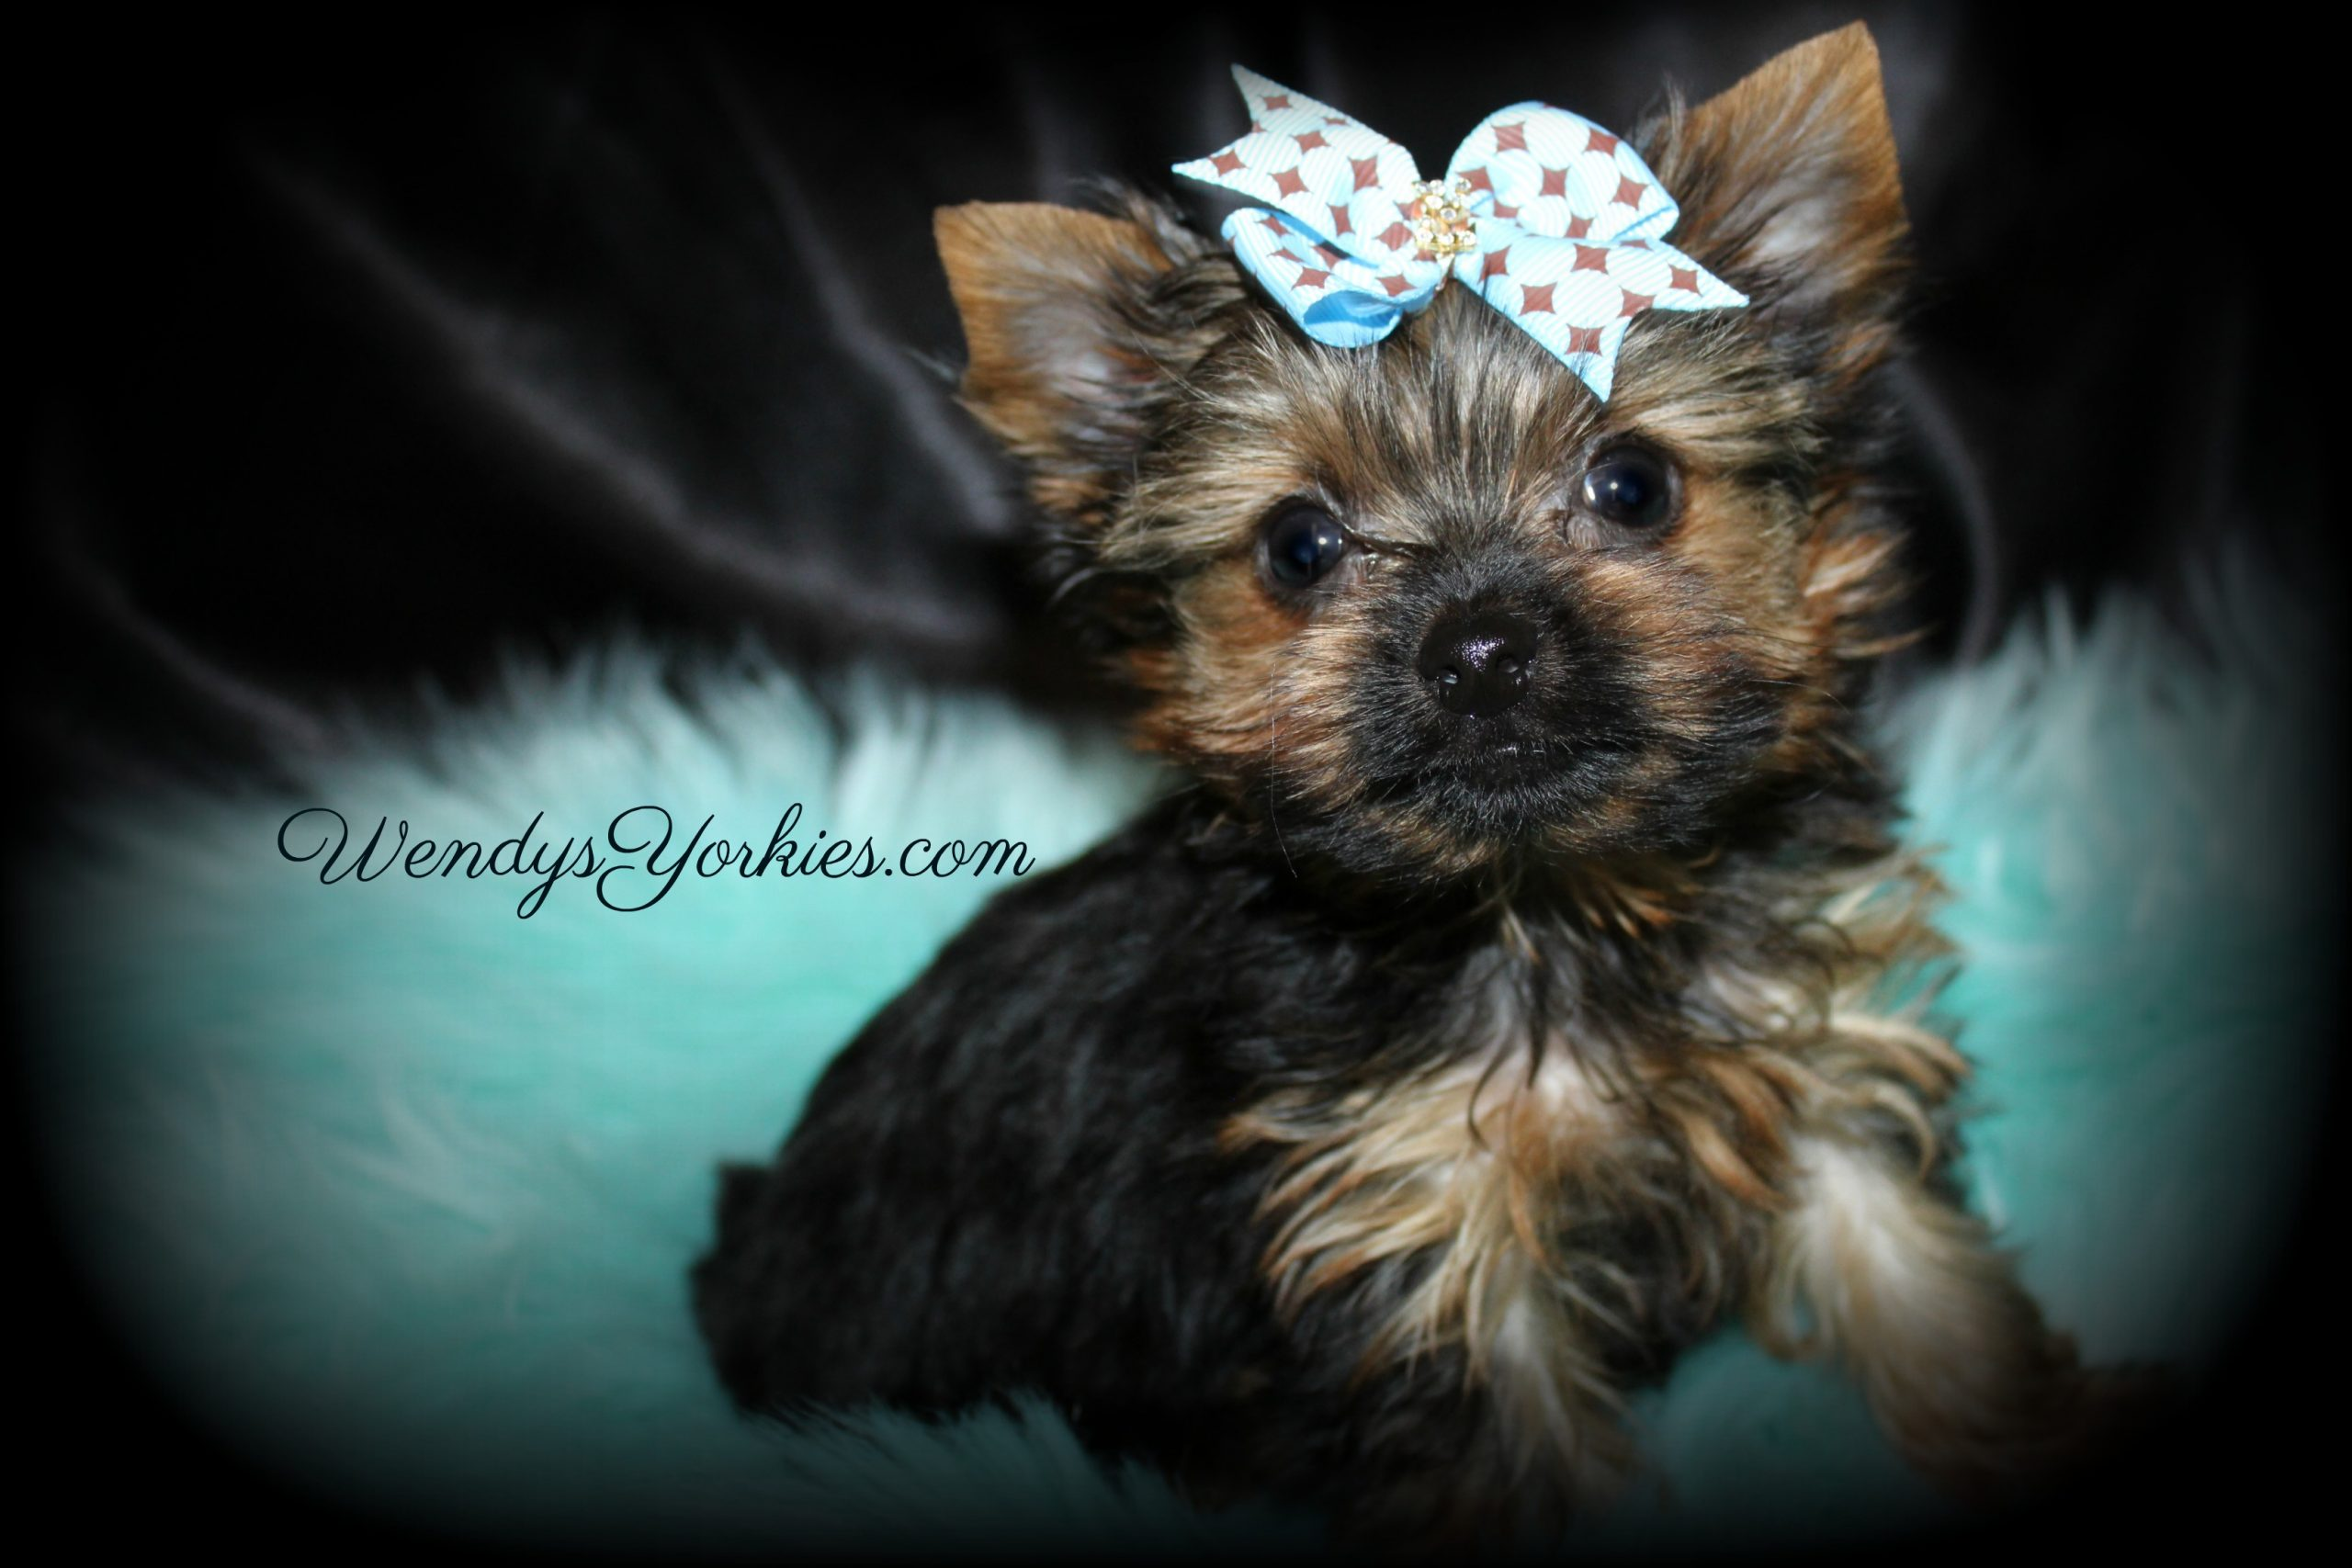 Tiny Teacup Male Yorkie puppy for sale in Texas, Chloe m1, WendysYorkies.com